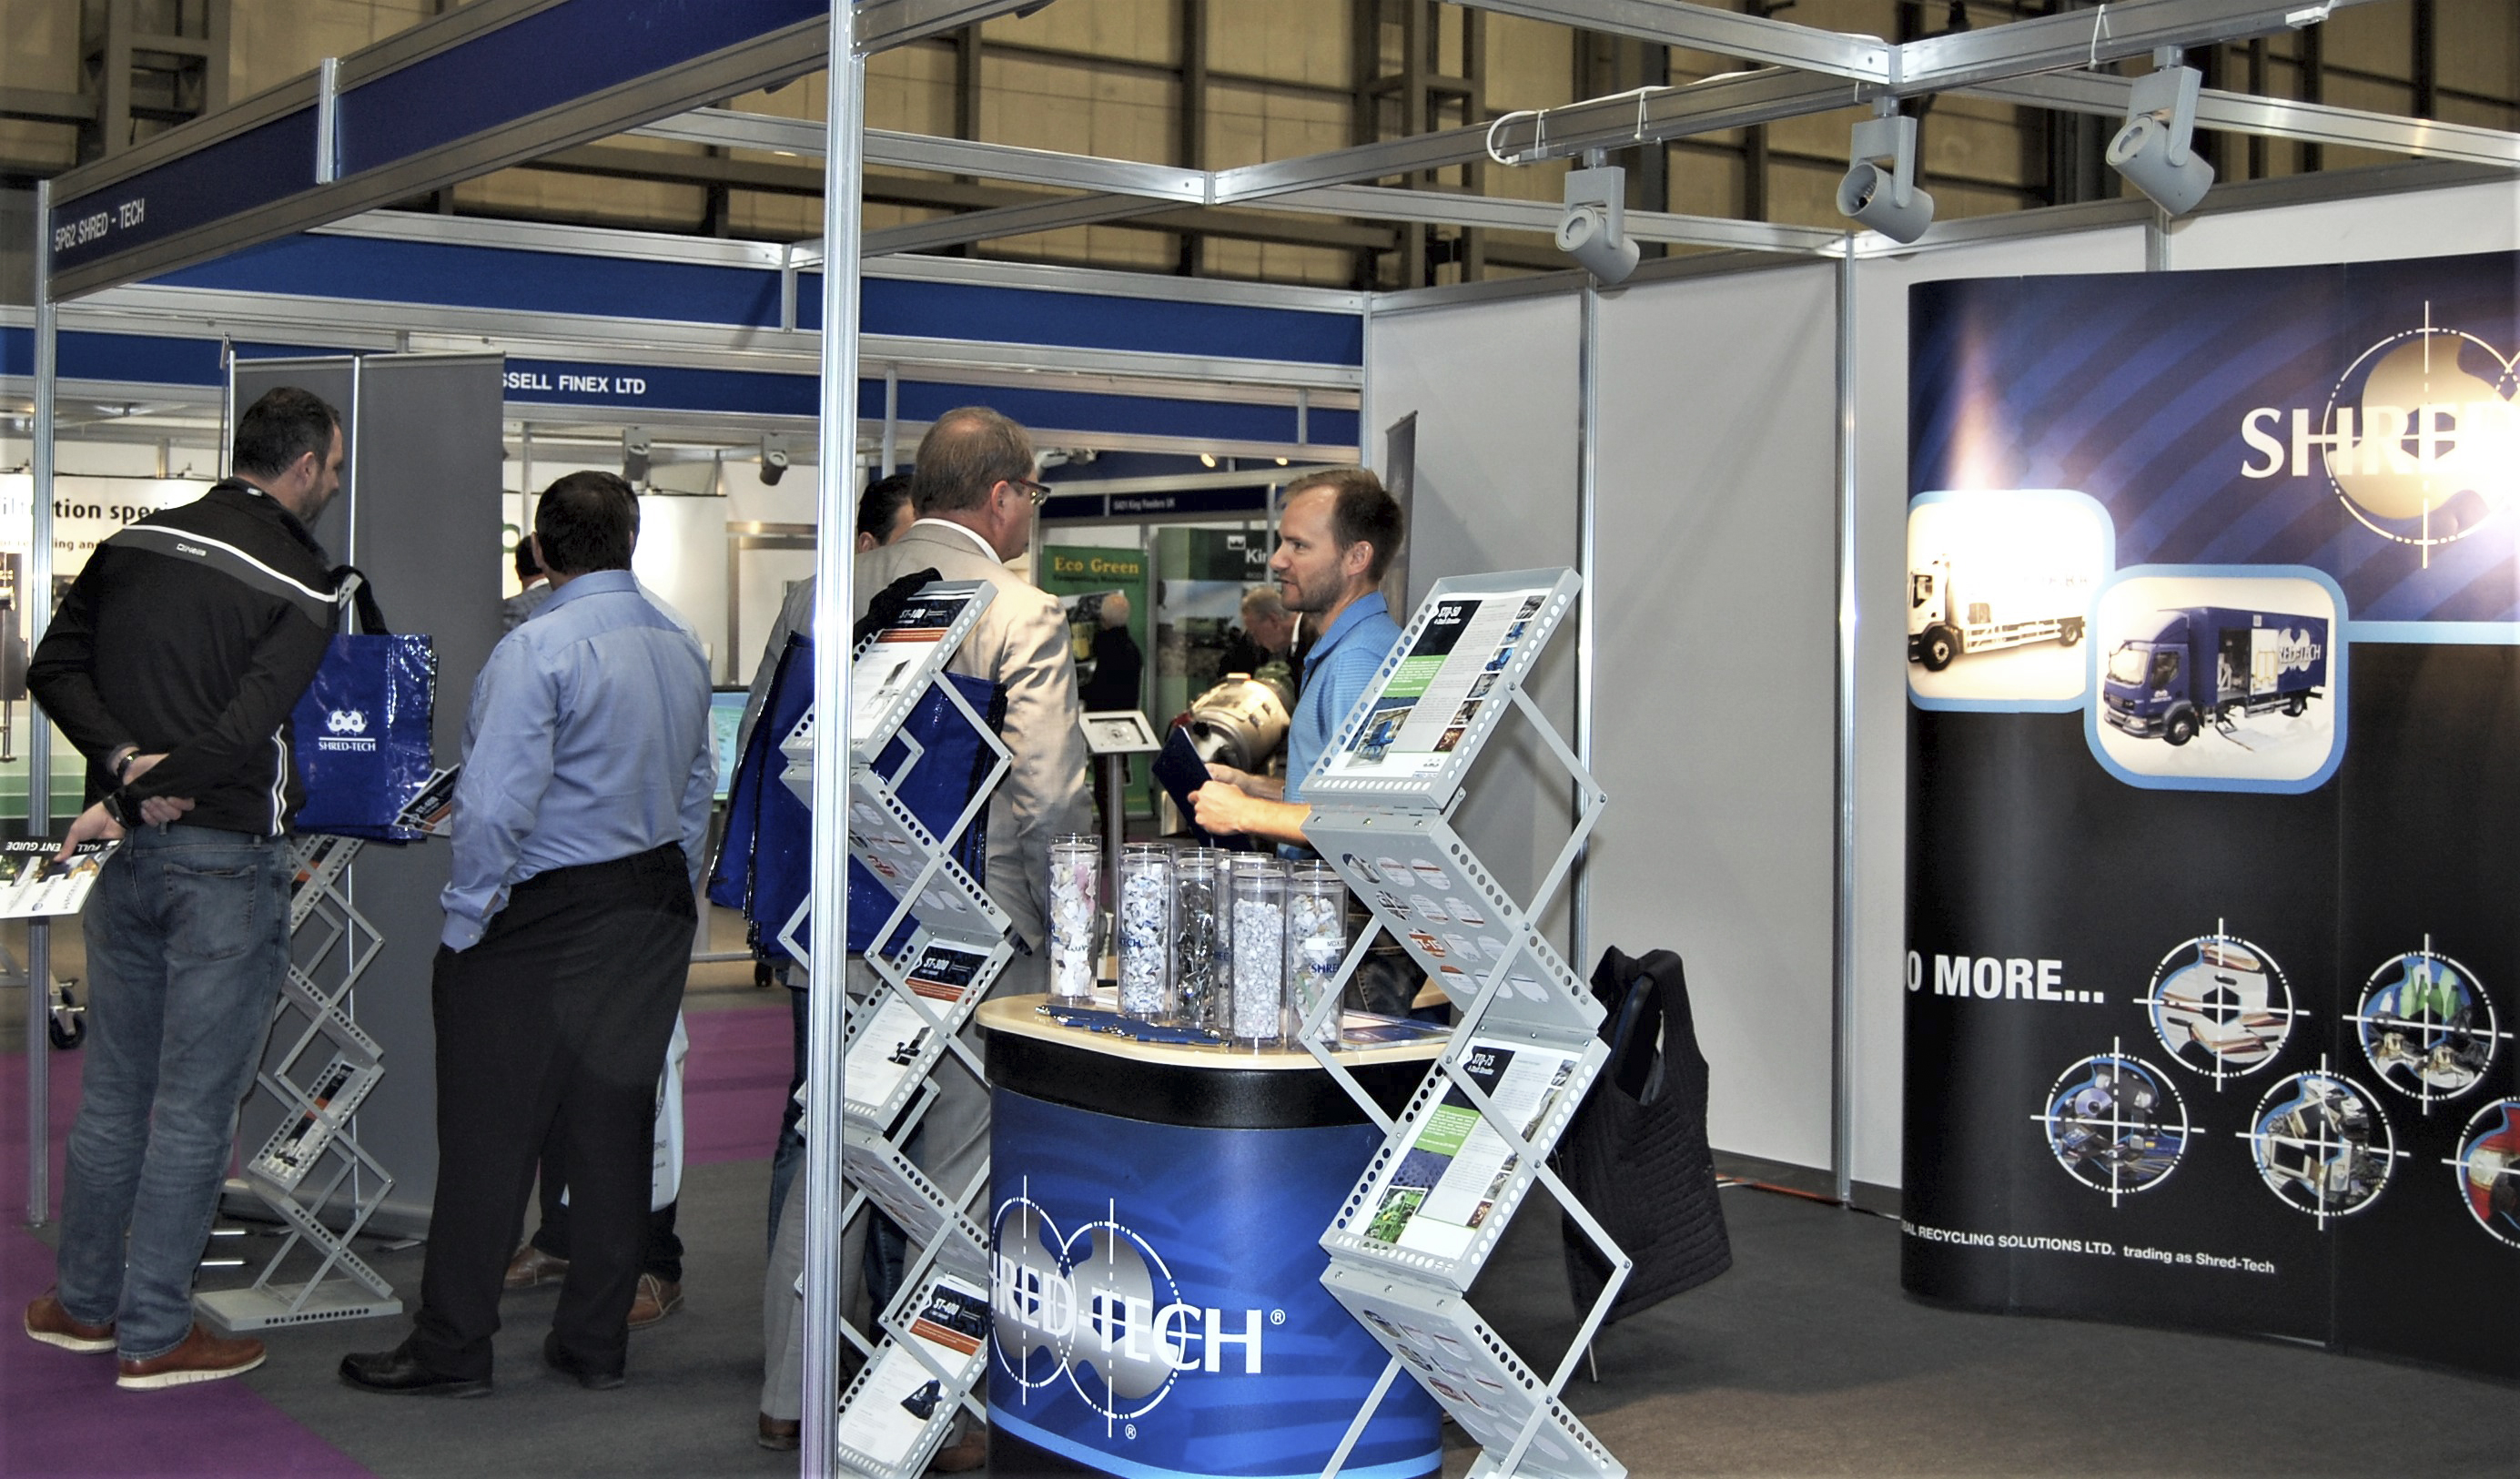 Recycling And Waste Handling Solutions In Focus At Rwm 2018 Rock Molded Circuit Board Equipment Buy Magnetic Separators Given The Amount Of Metal Often Found Concrete Other Construction Materials Which Has Been A Problem Processing Cd